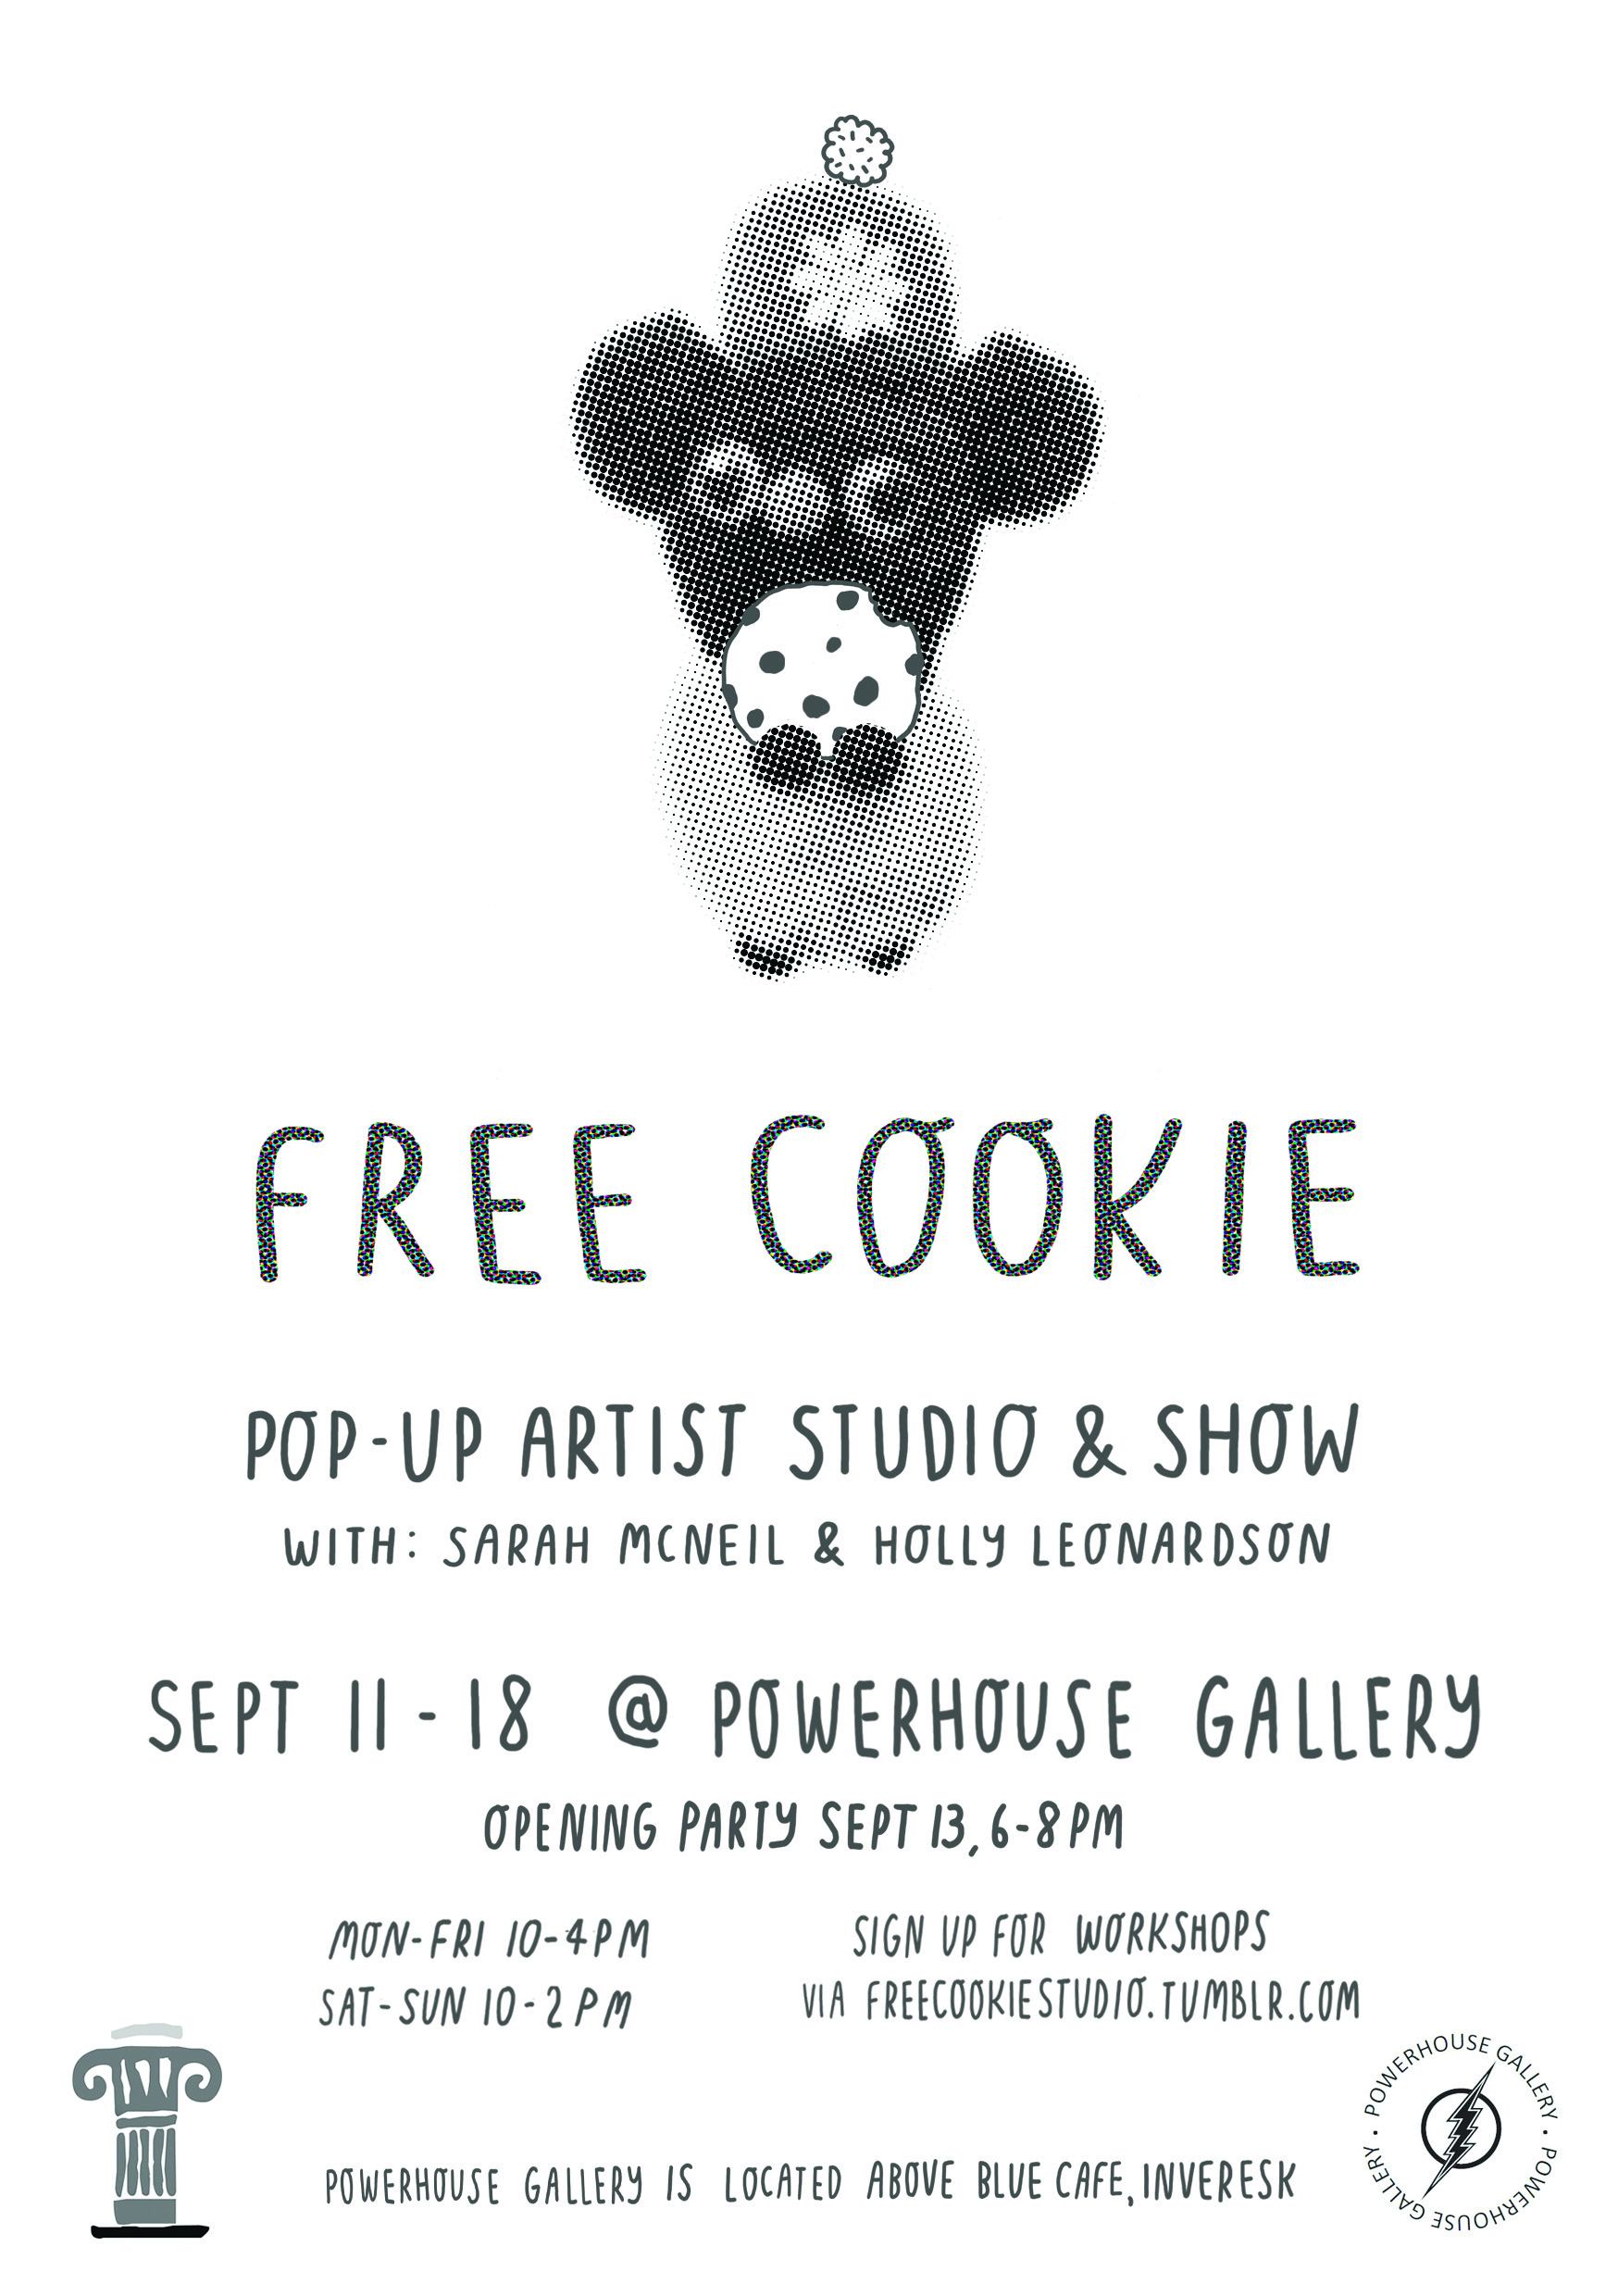 Free_cookie_flyer_2013.jpg